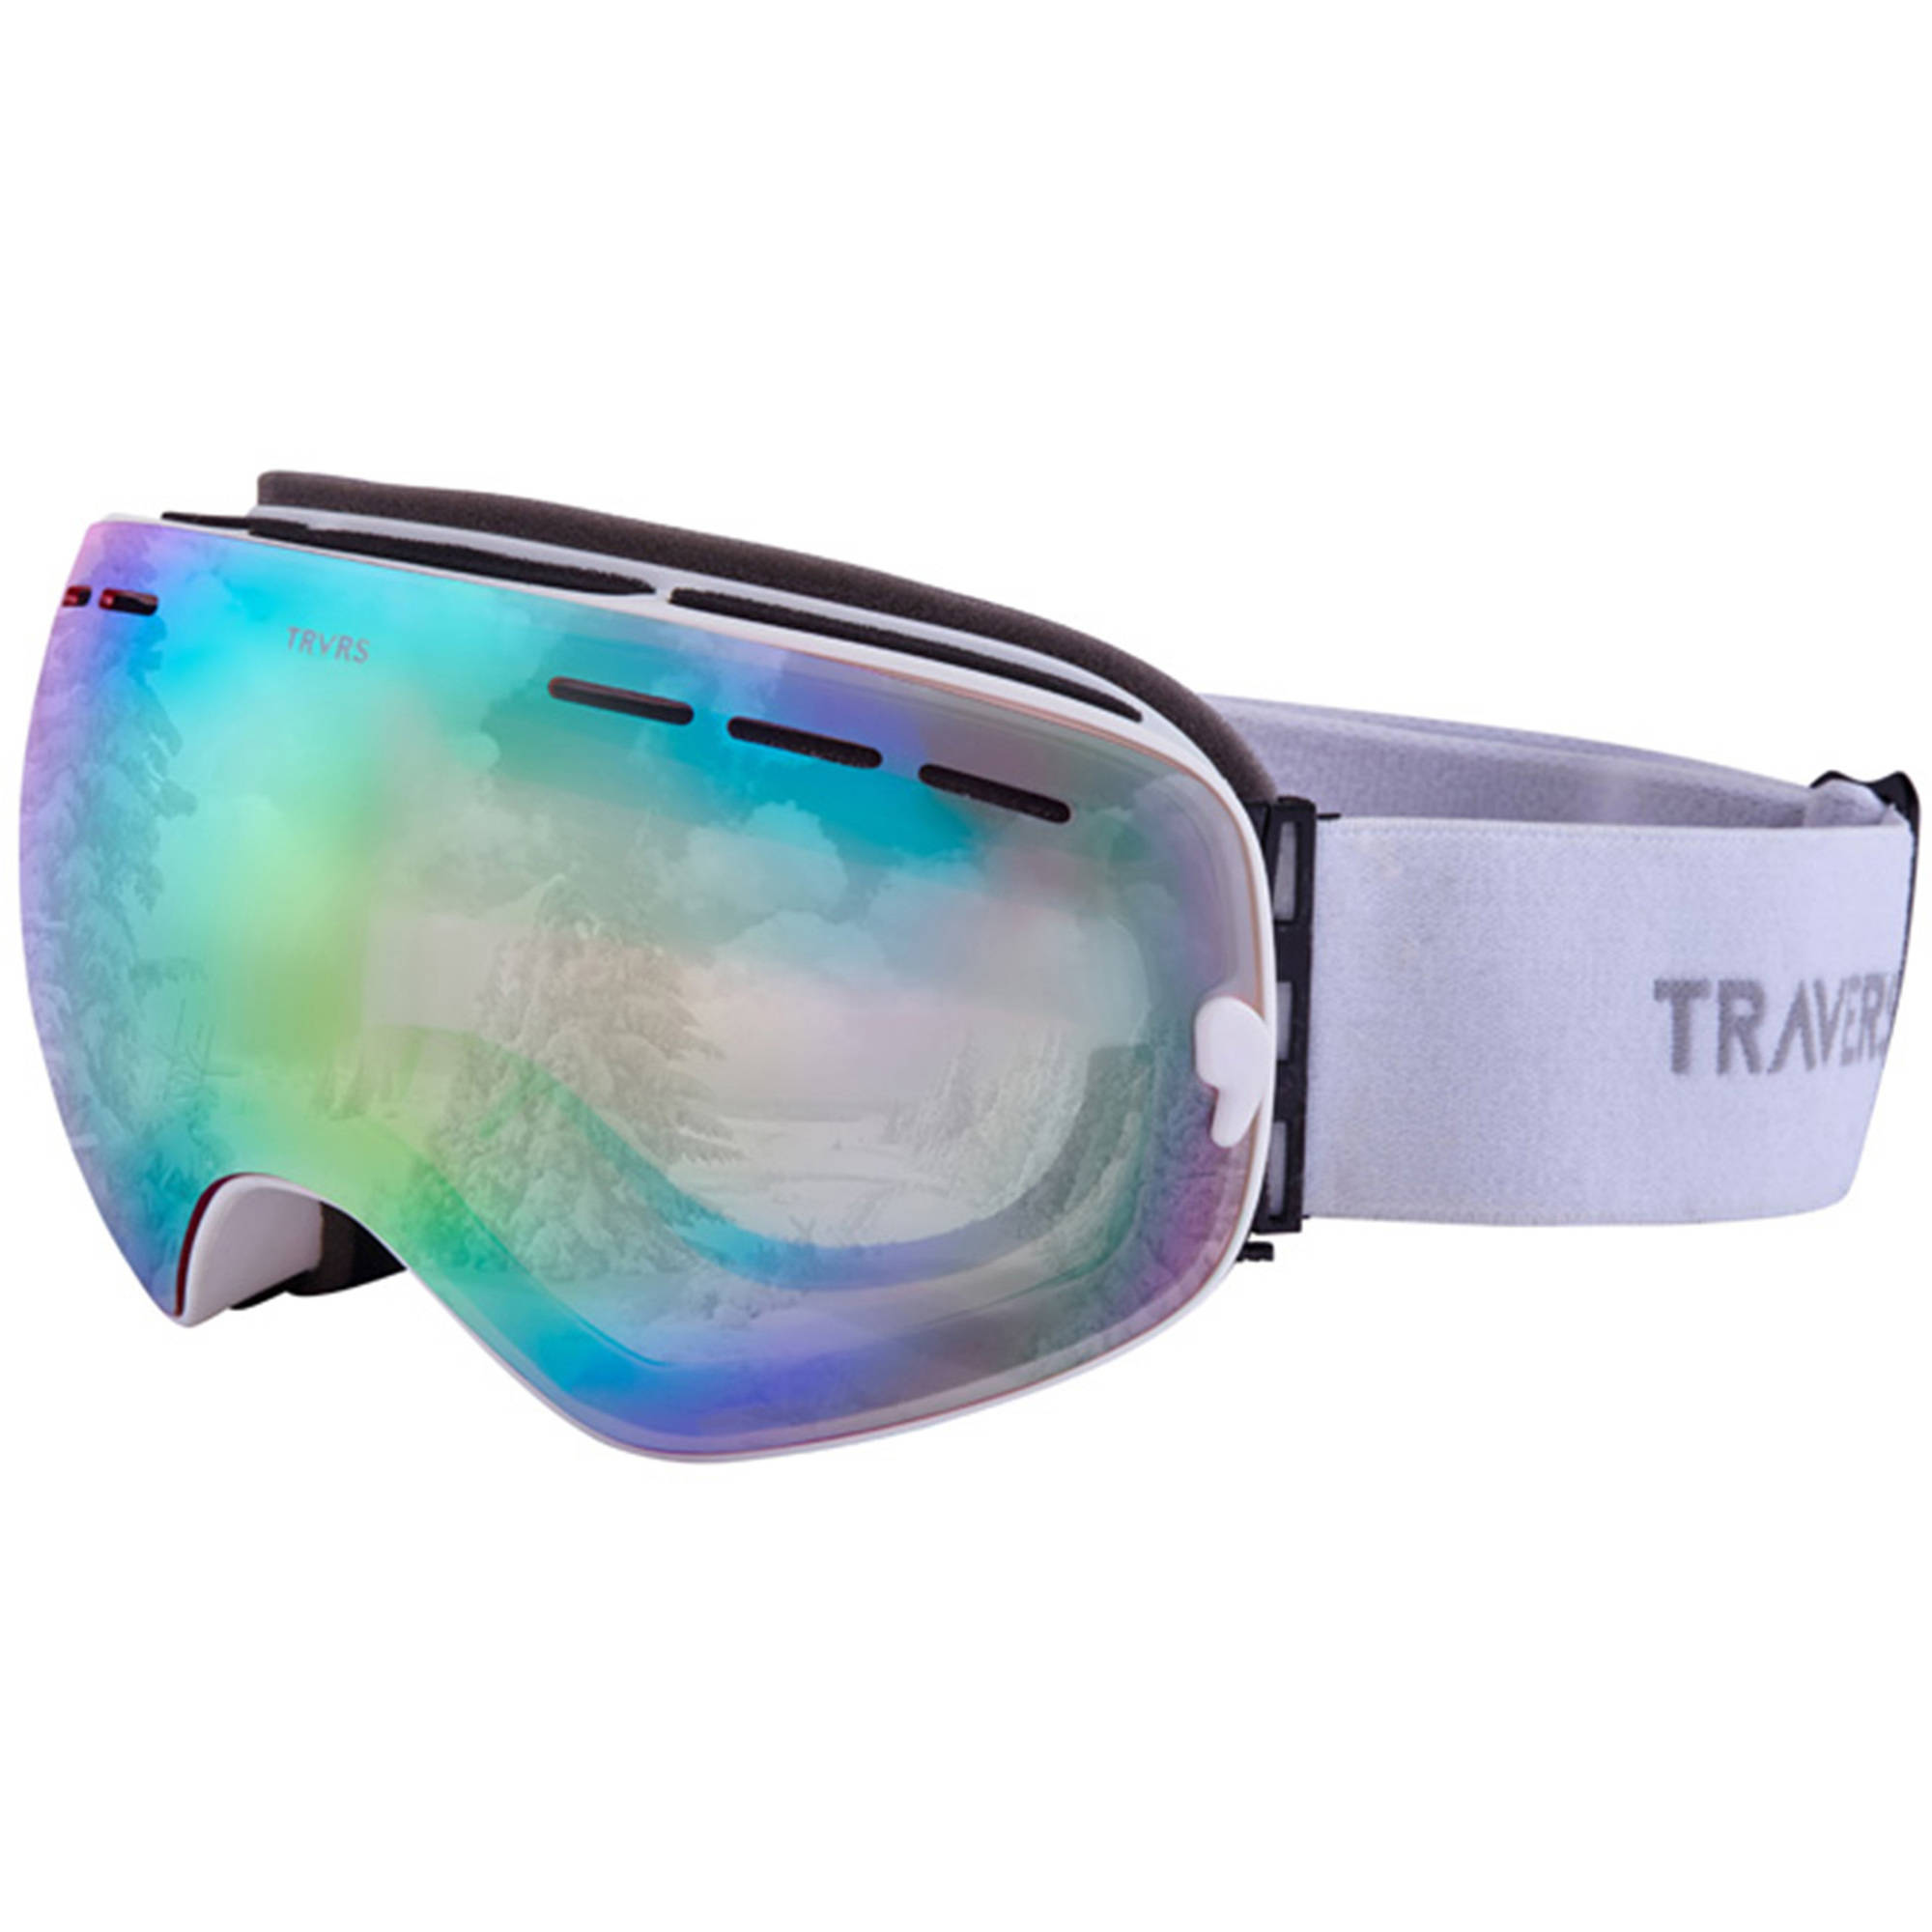 Traverse Virgata Ski, Snowboard, and Snowmobile Goggles, Multiple Colors Available